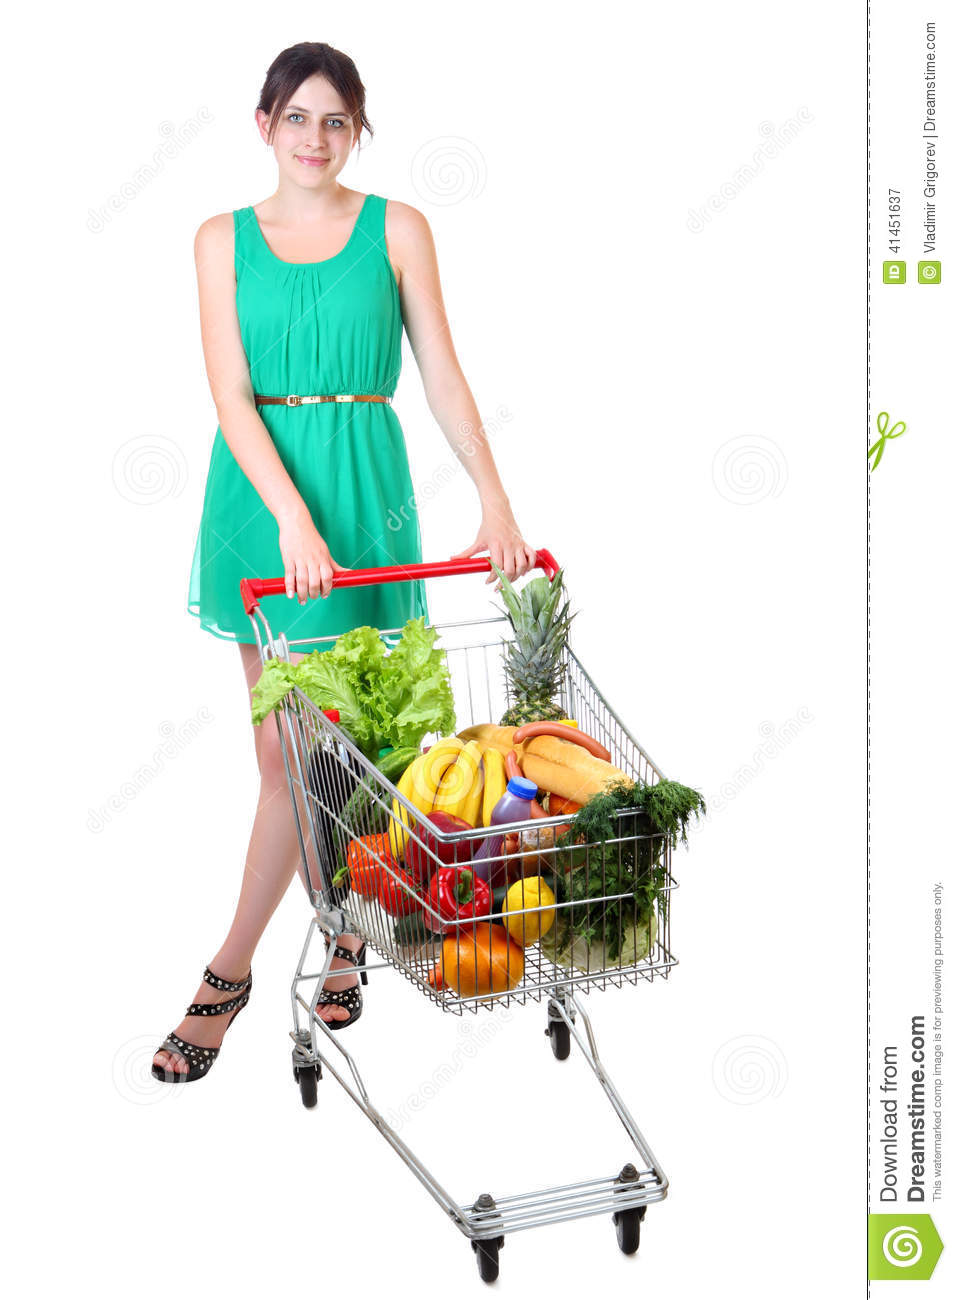 ... Dress With Full Shopping Grocery Cart Stock Photo - Image: 41451637